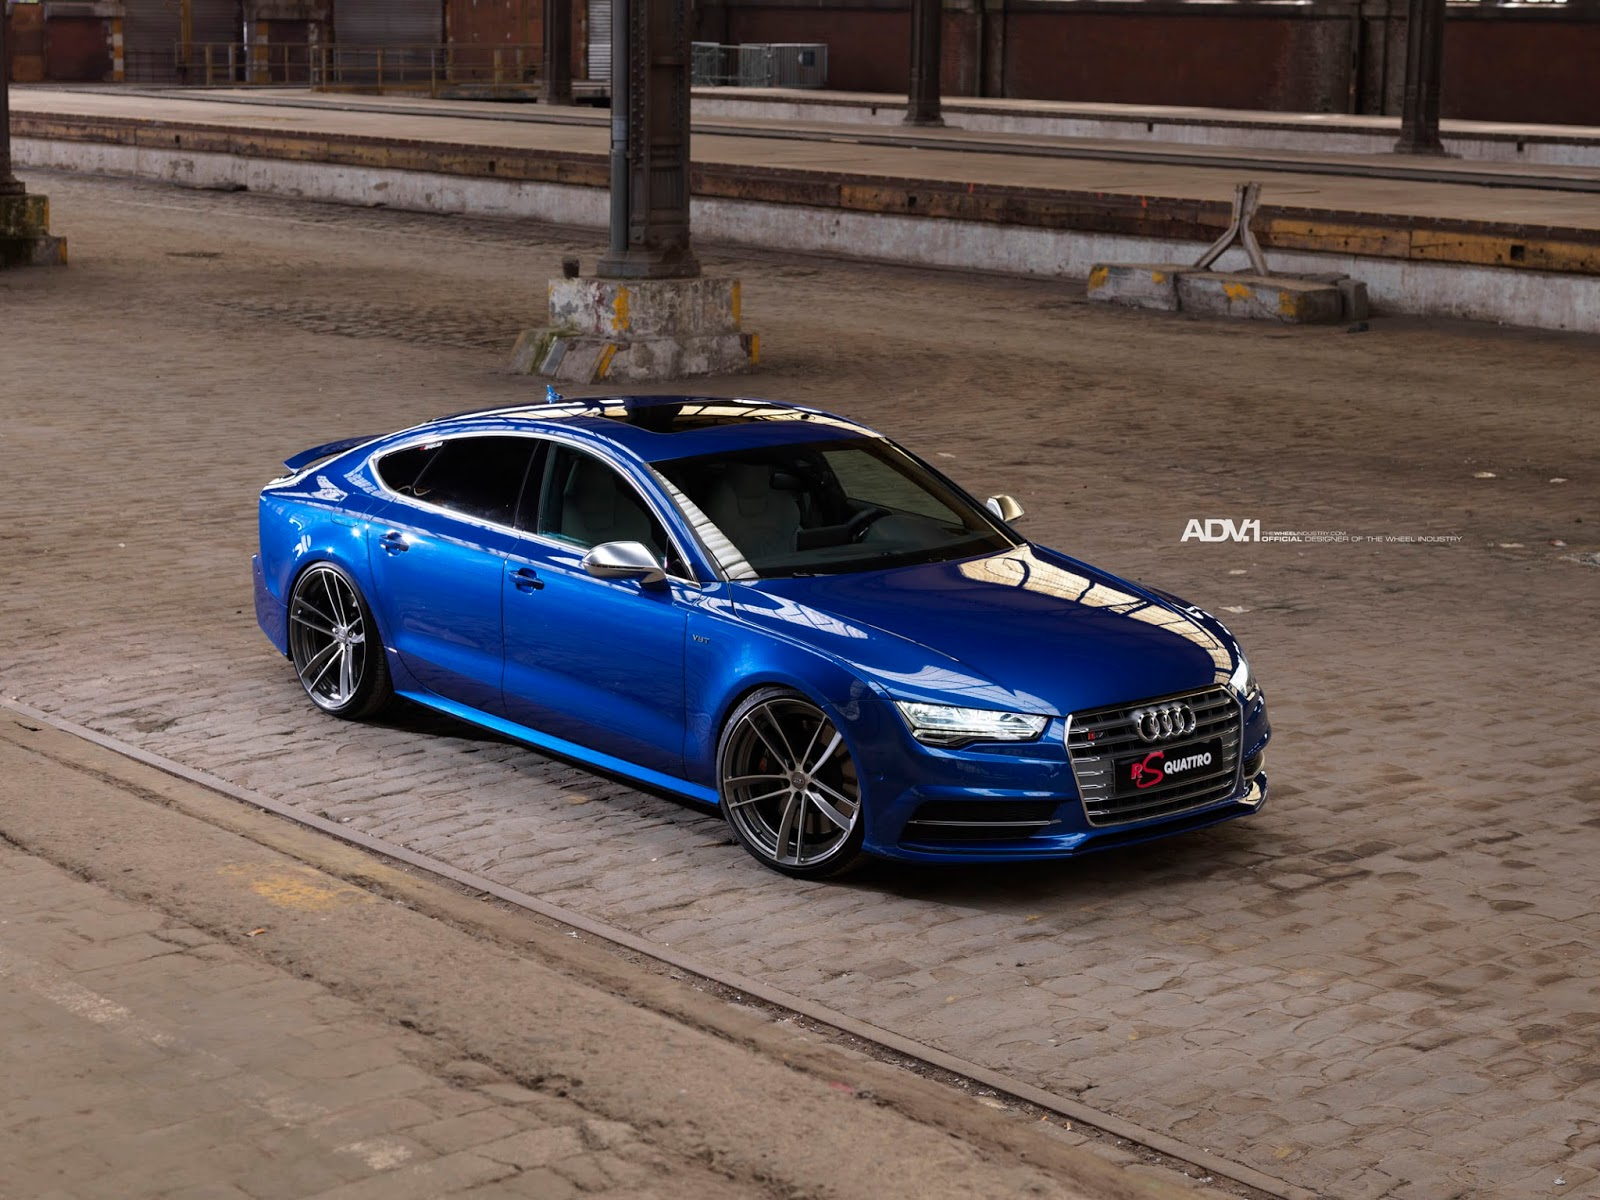 all cars nz audi s7 with adv1wheels. Black Bedroom Furniture Sets. Home Design Ideas